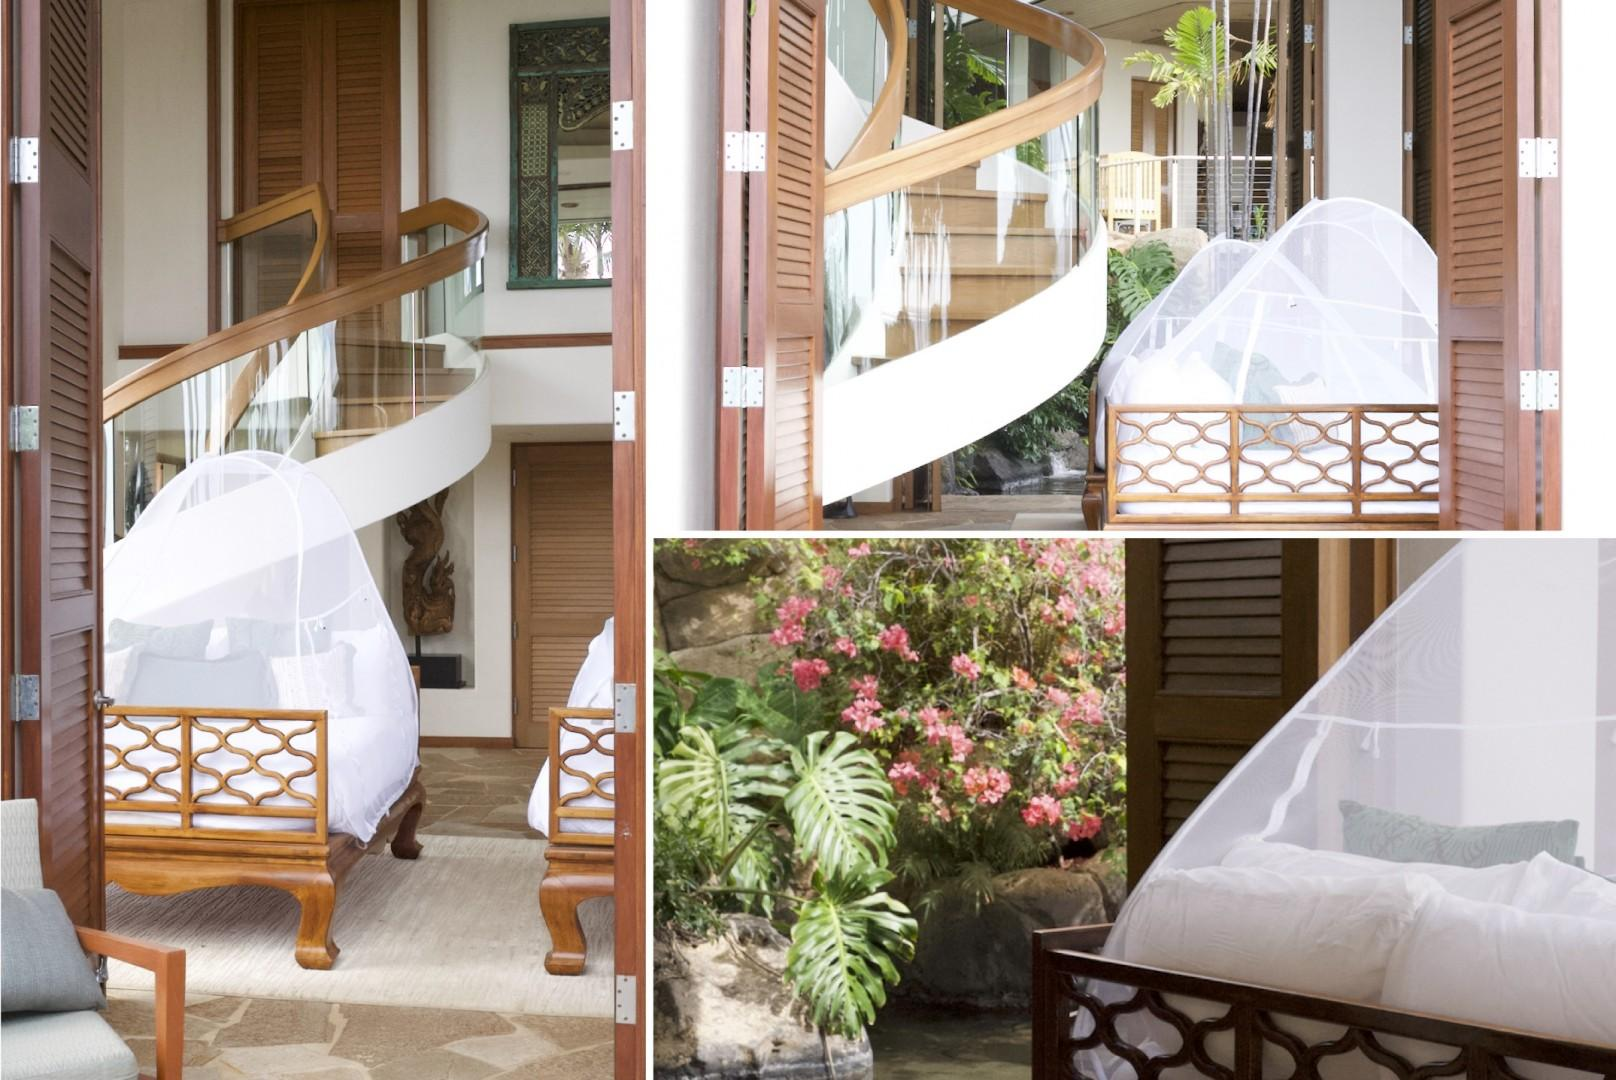 Elegant mosquito netting enclosures allow shutter doors to remain open for maximum sleeping comfort on breezy tropical nights.